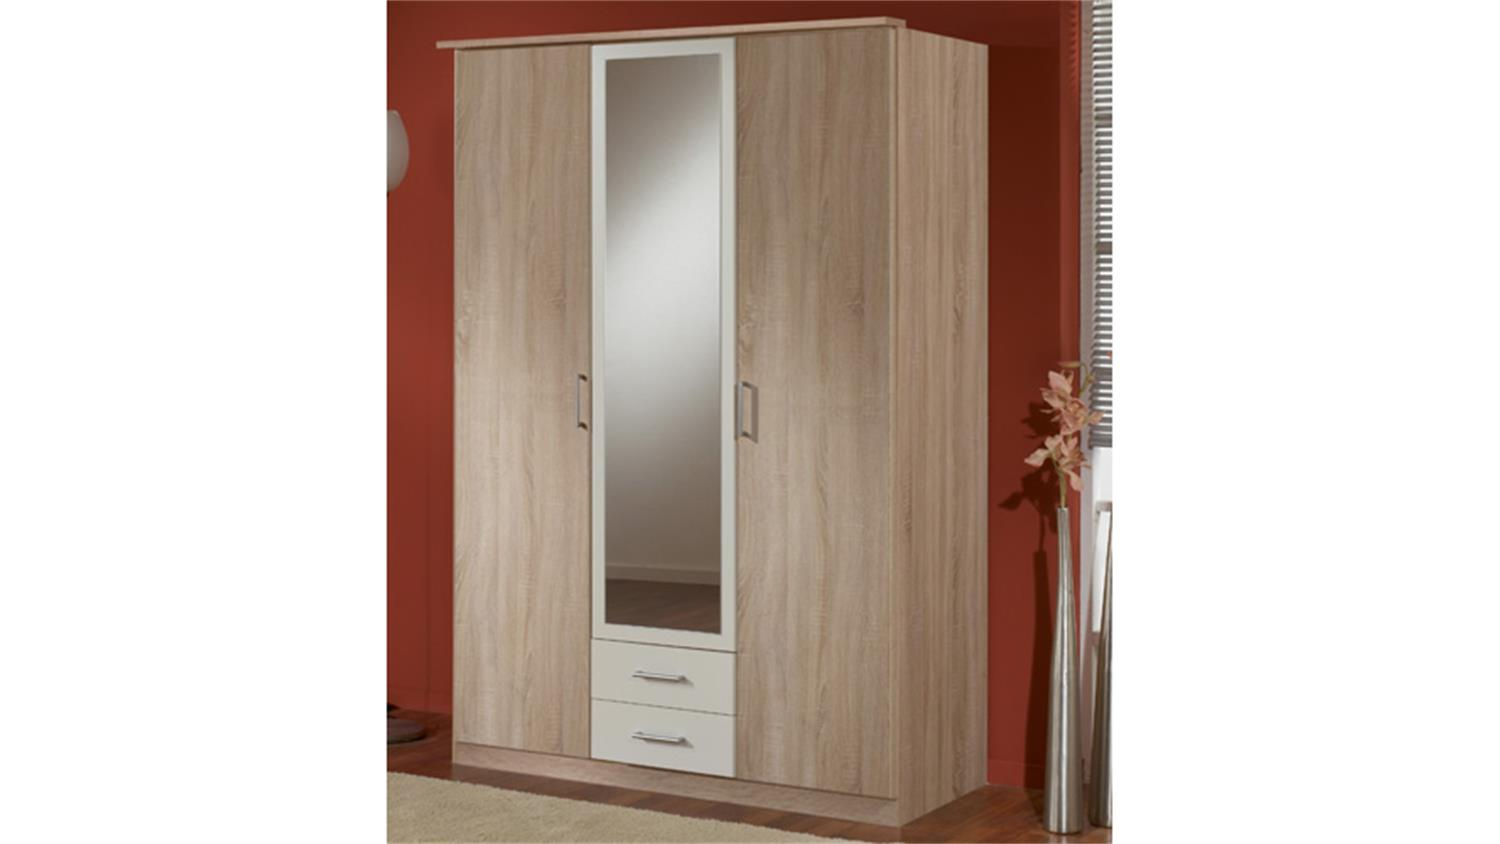 kleiderschrank polo sonoma eiche s gerau und wei b 135 cm. Black Bedroom Furniture Sets. Home Design Ideas